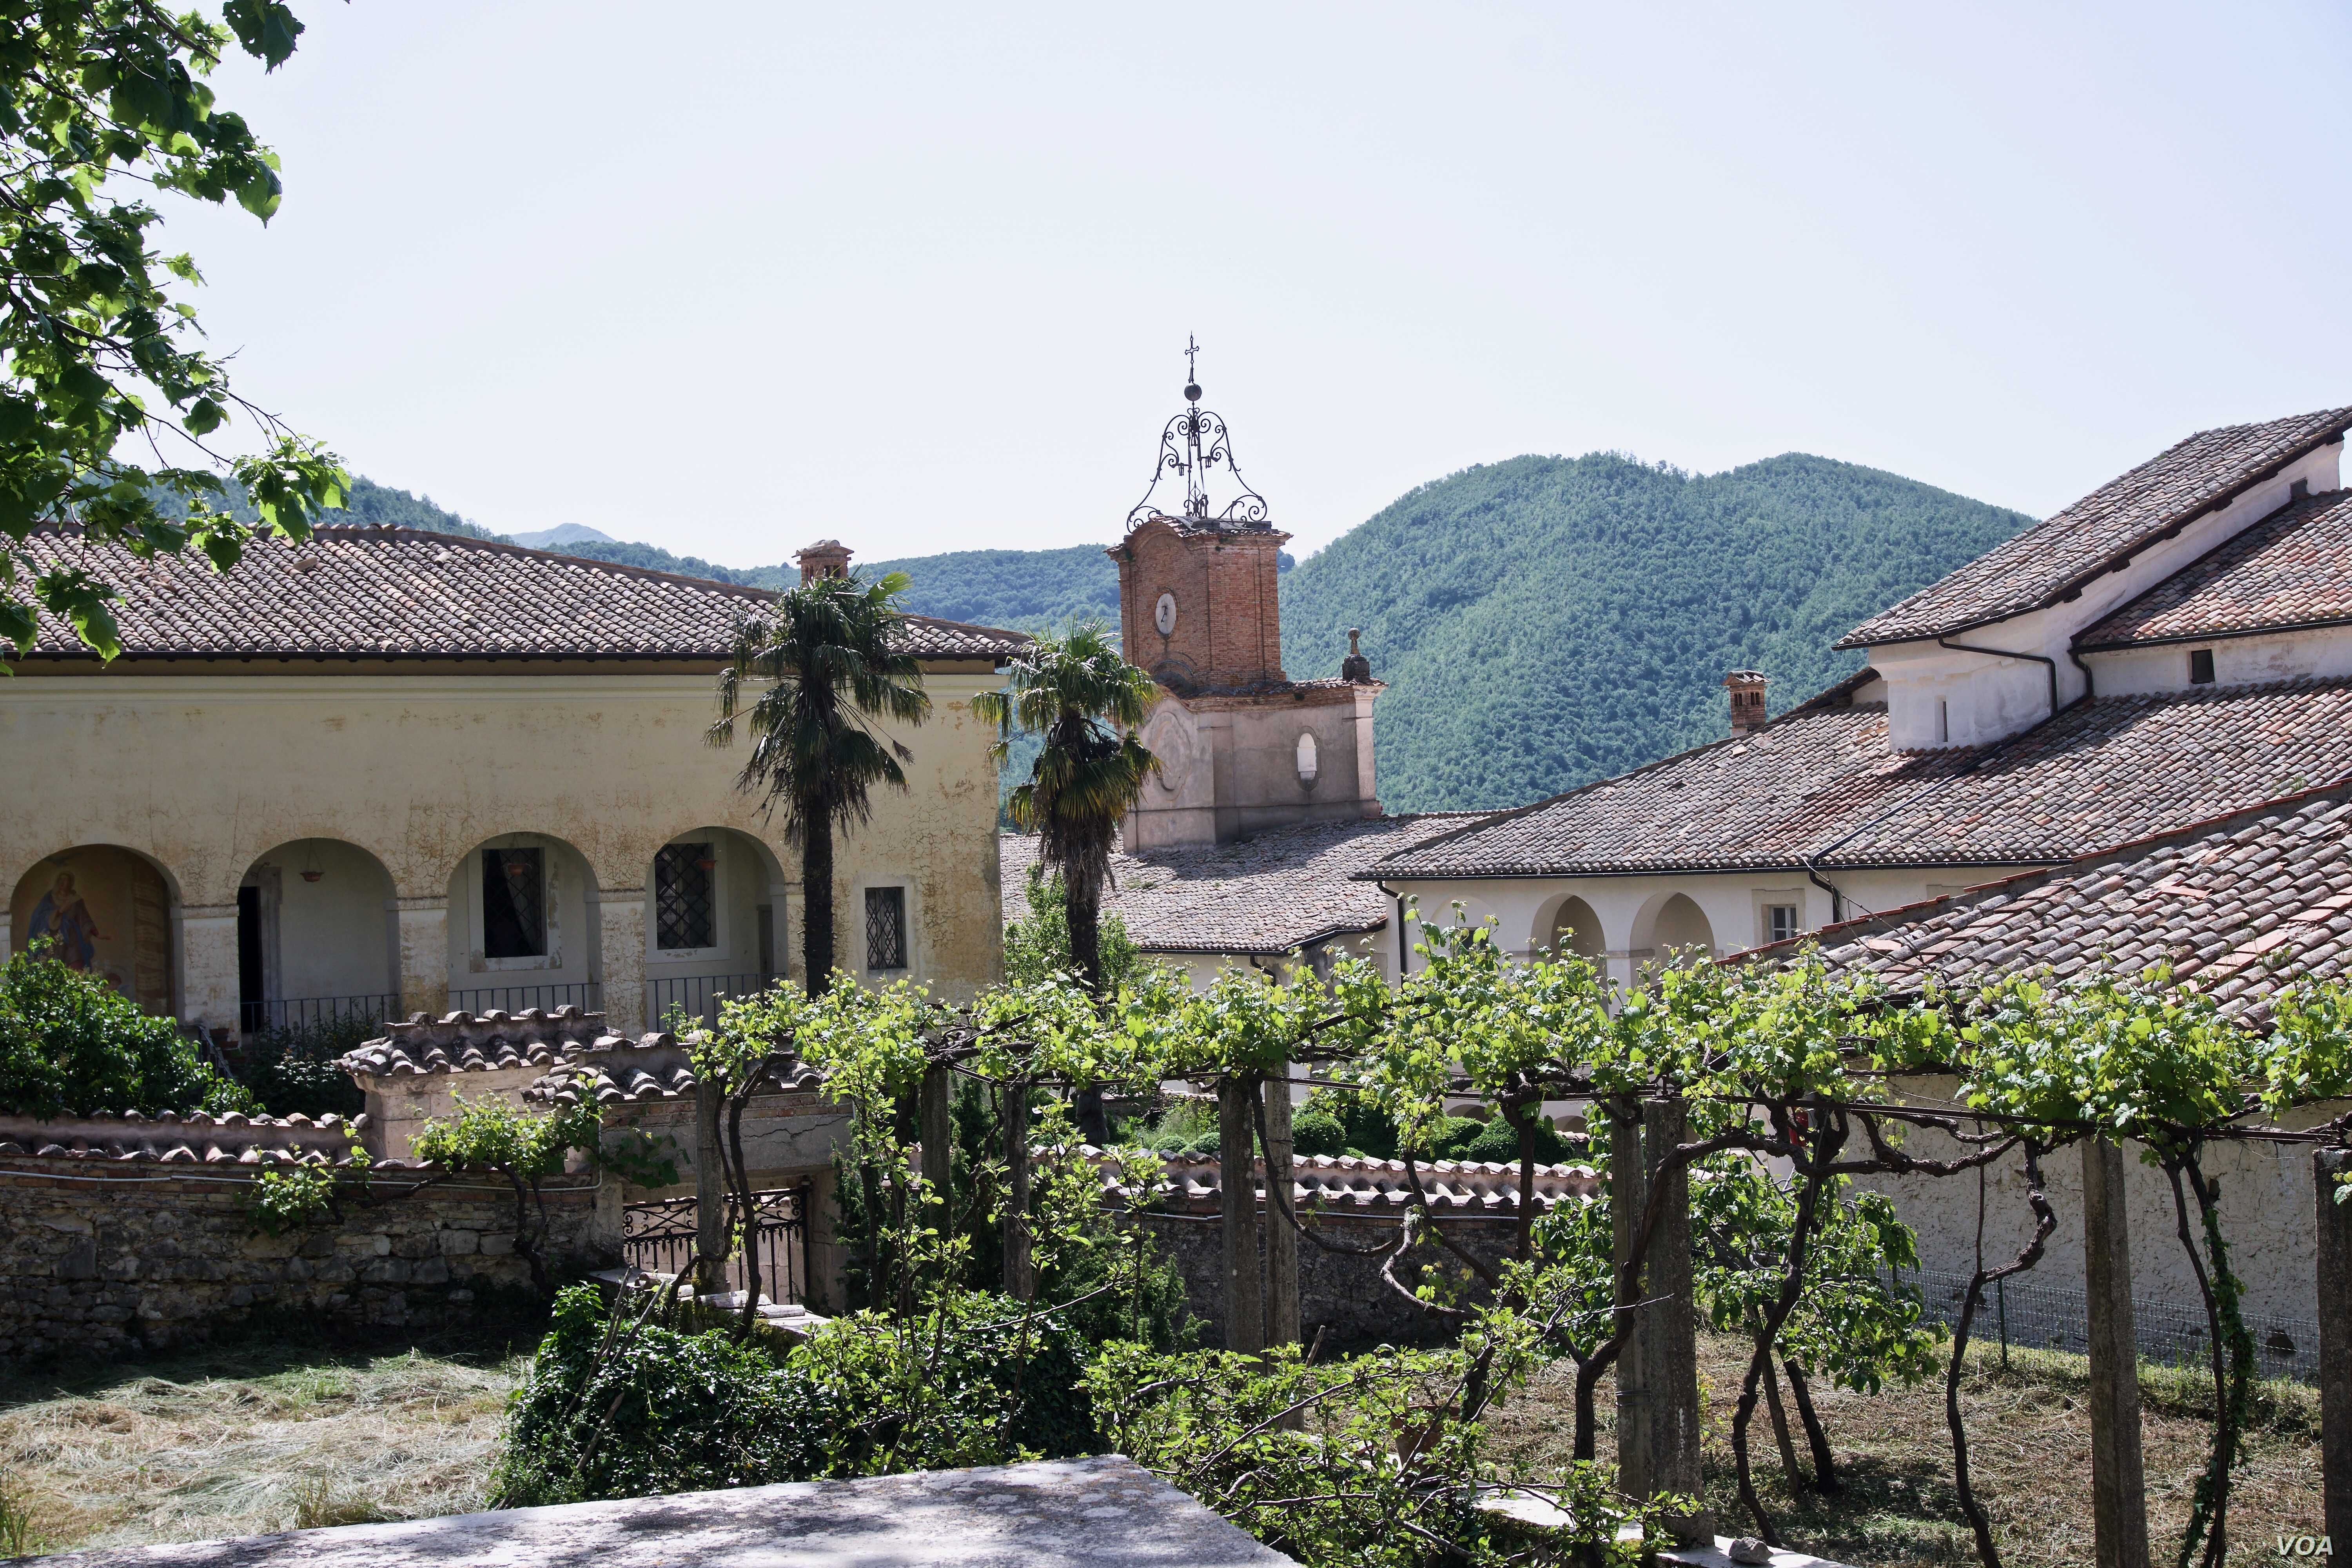 The 13th century monastery was famous for its pharmacy, and was where the the first Sambuca liquor was produced by monks.